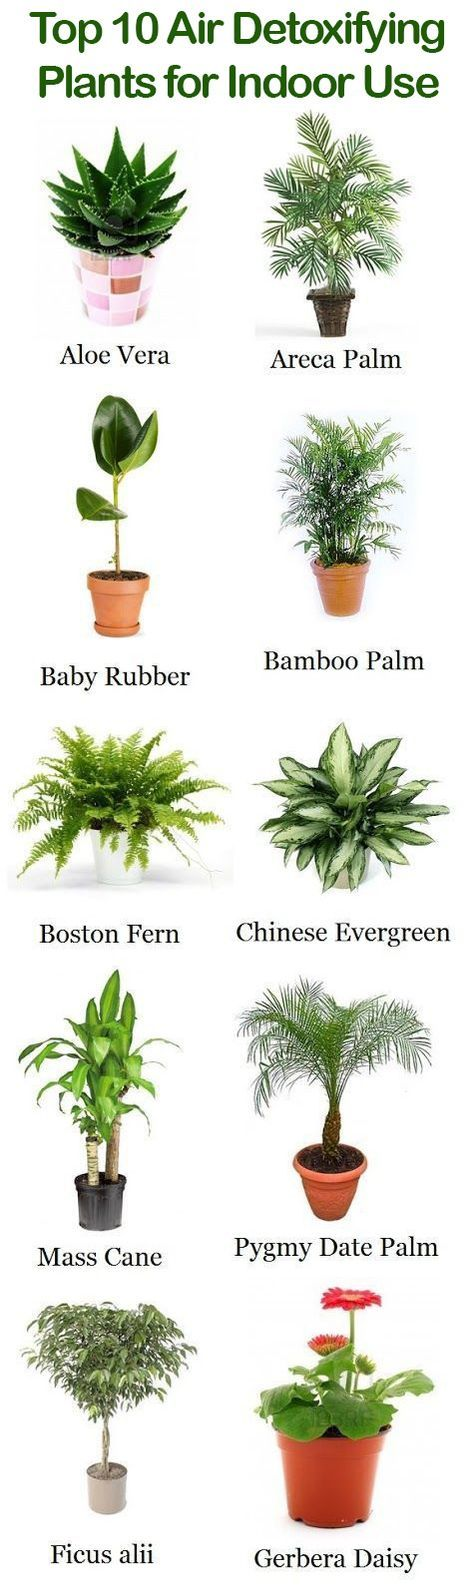 Top 10 Air Detoxifying Plants for Indoor Use Domácí